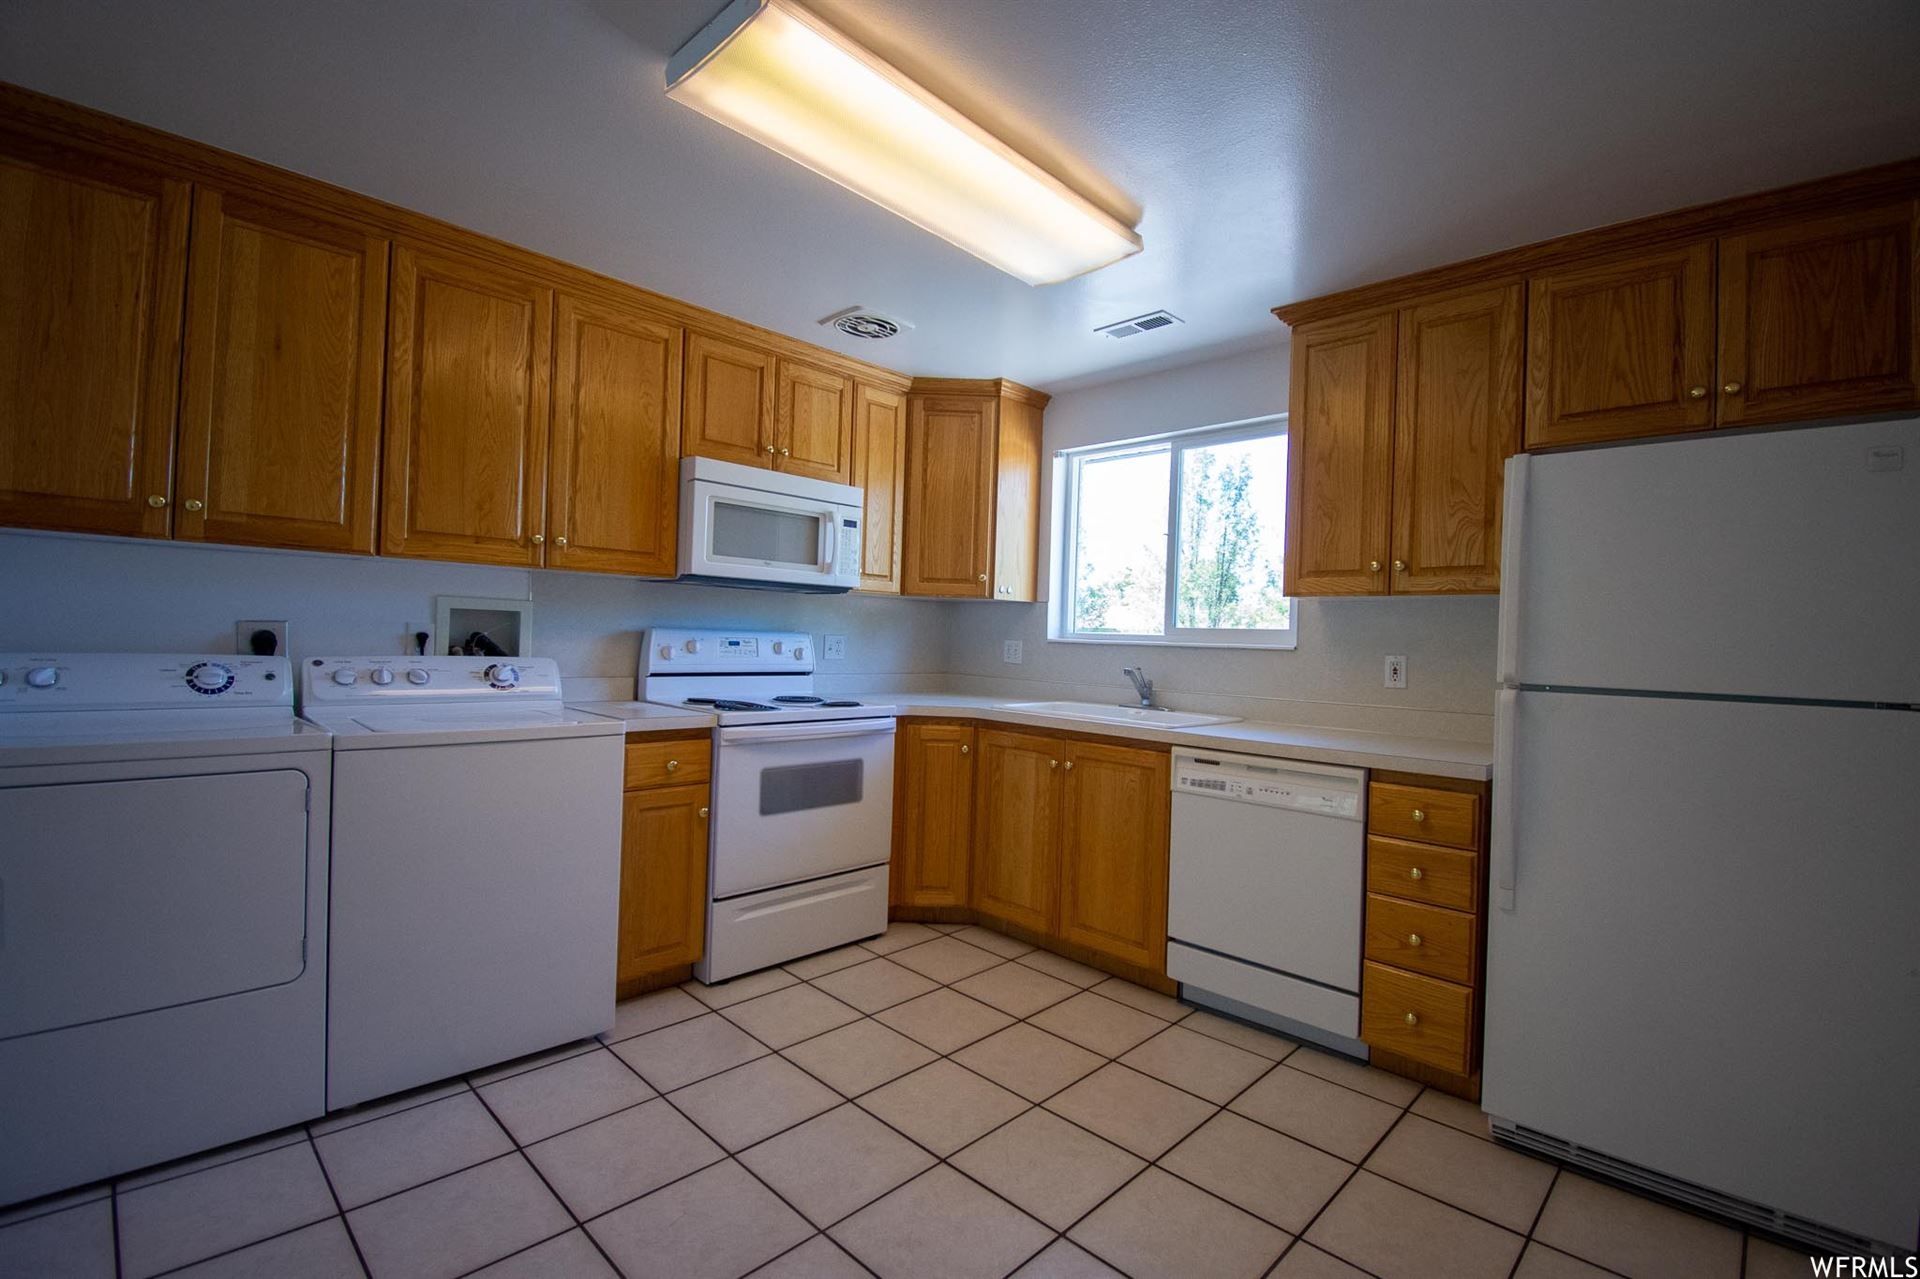 Photo of 330 S 150 W, Orem, UT 84058 (MLS # 1732966)